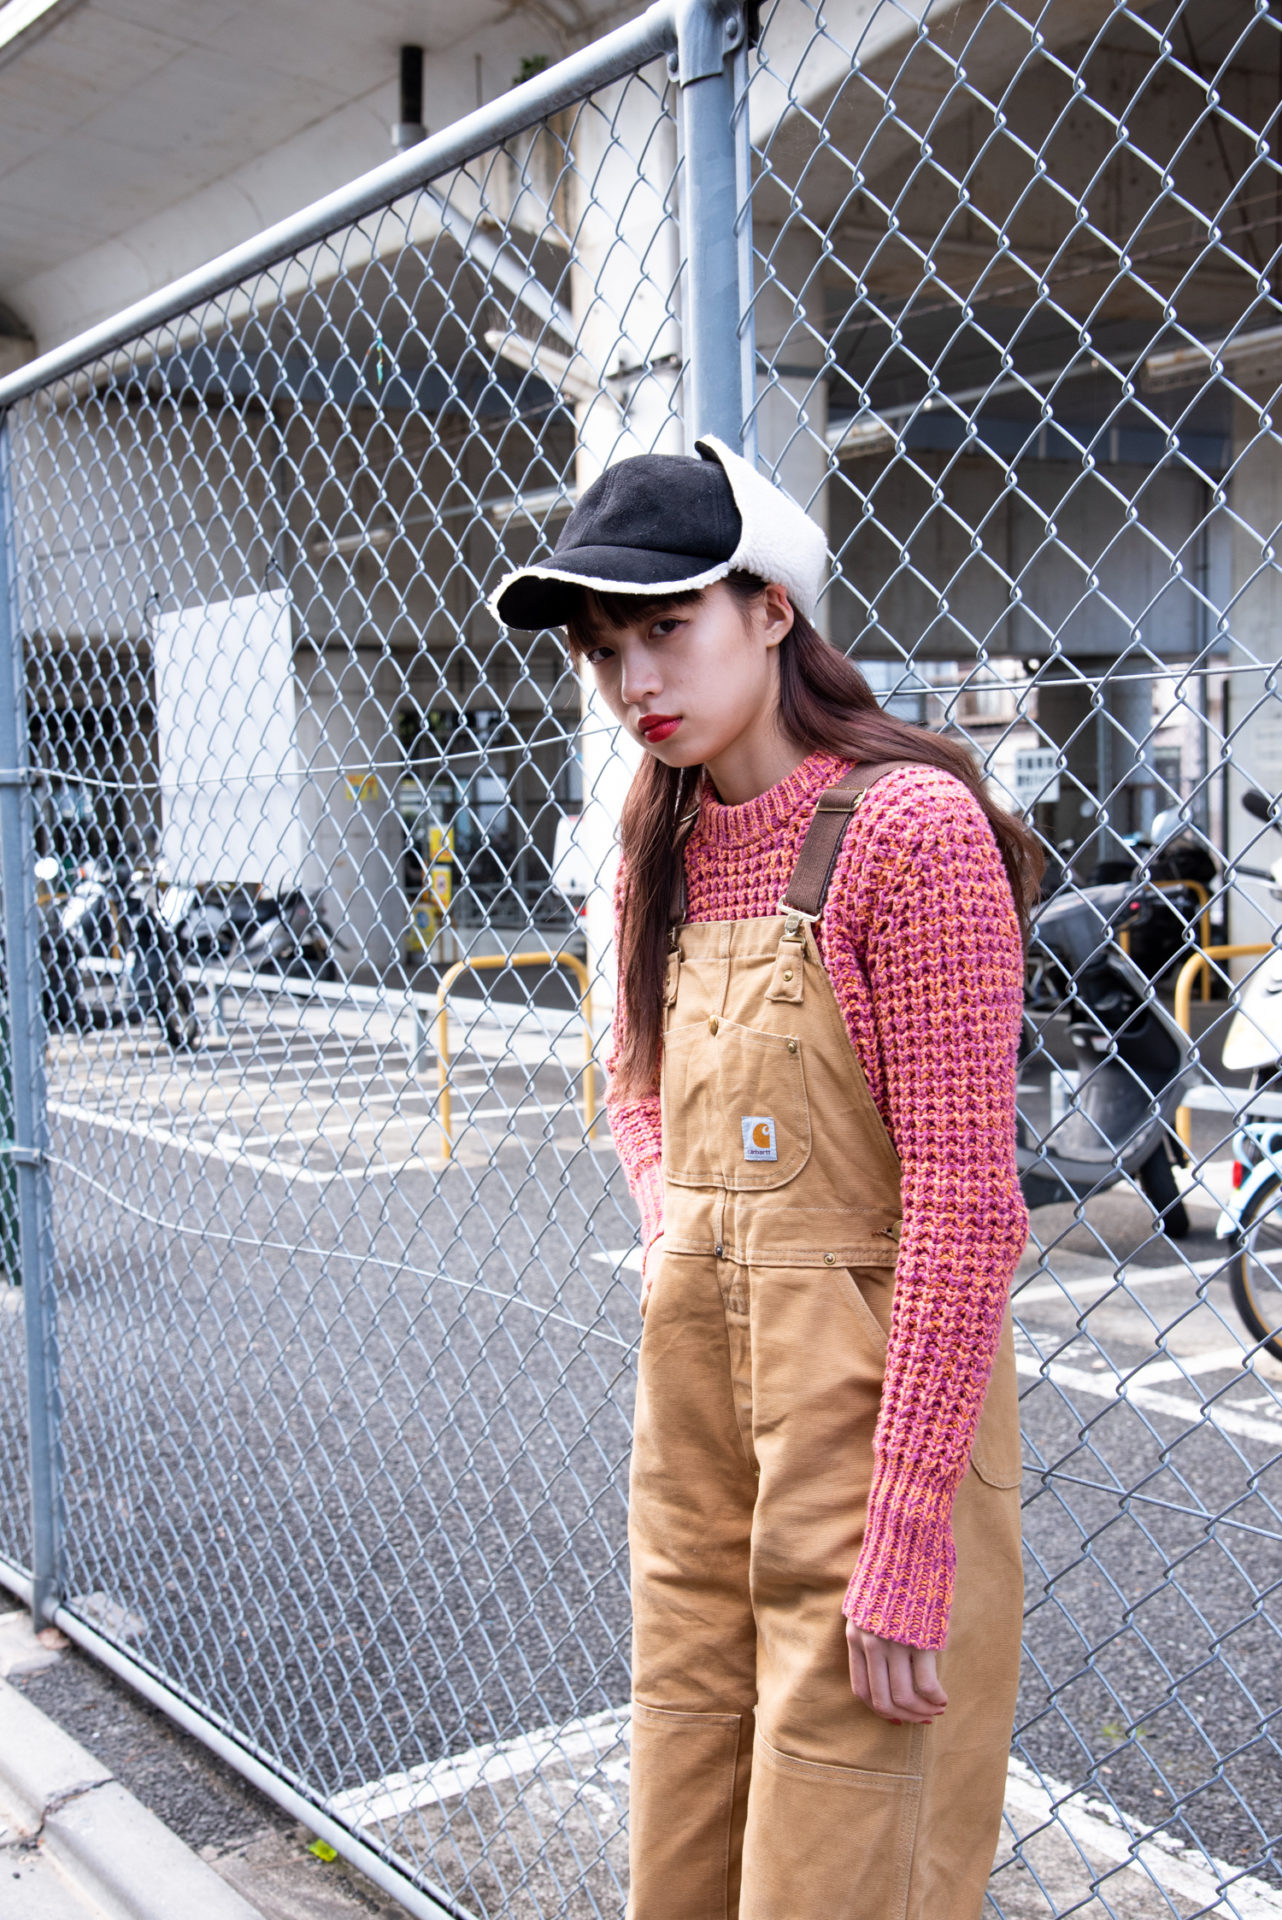 Girls On The Street Nov. 2019 – 彩音 vol. 3 –